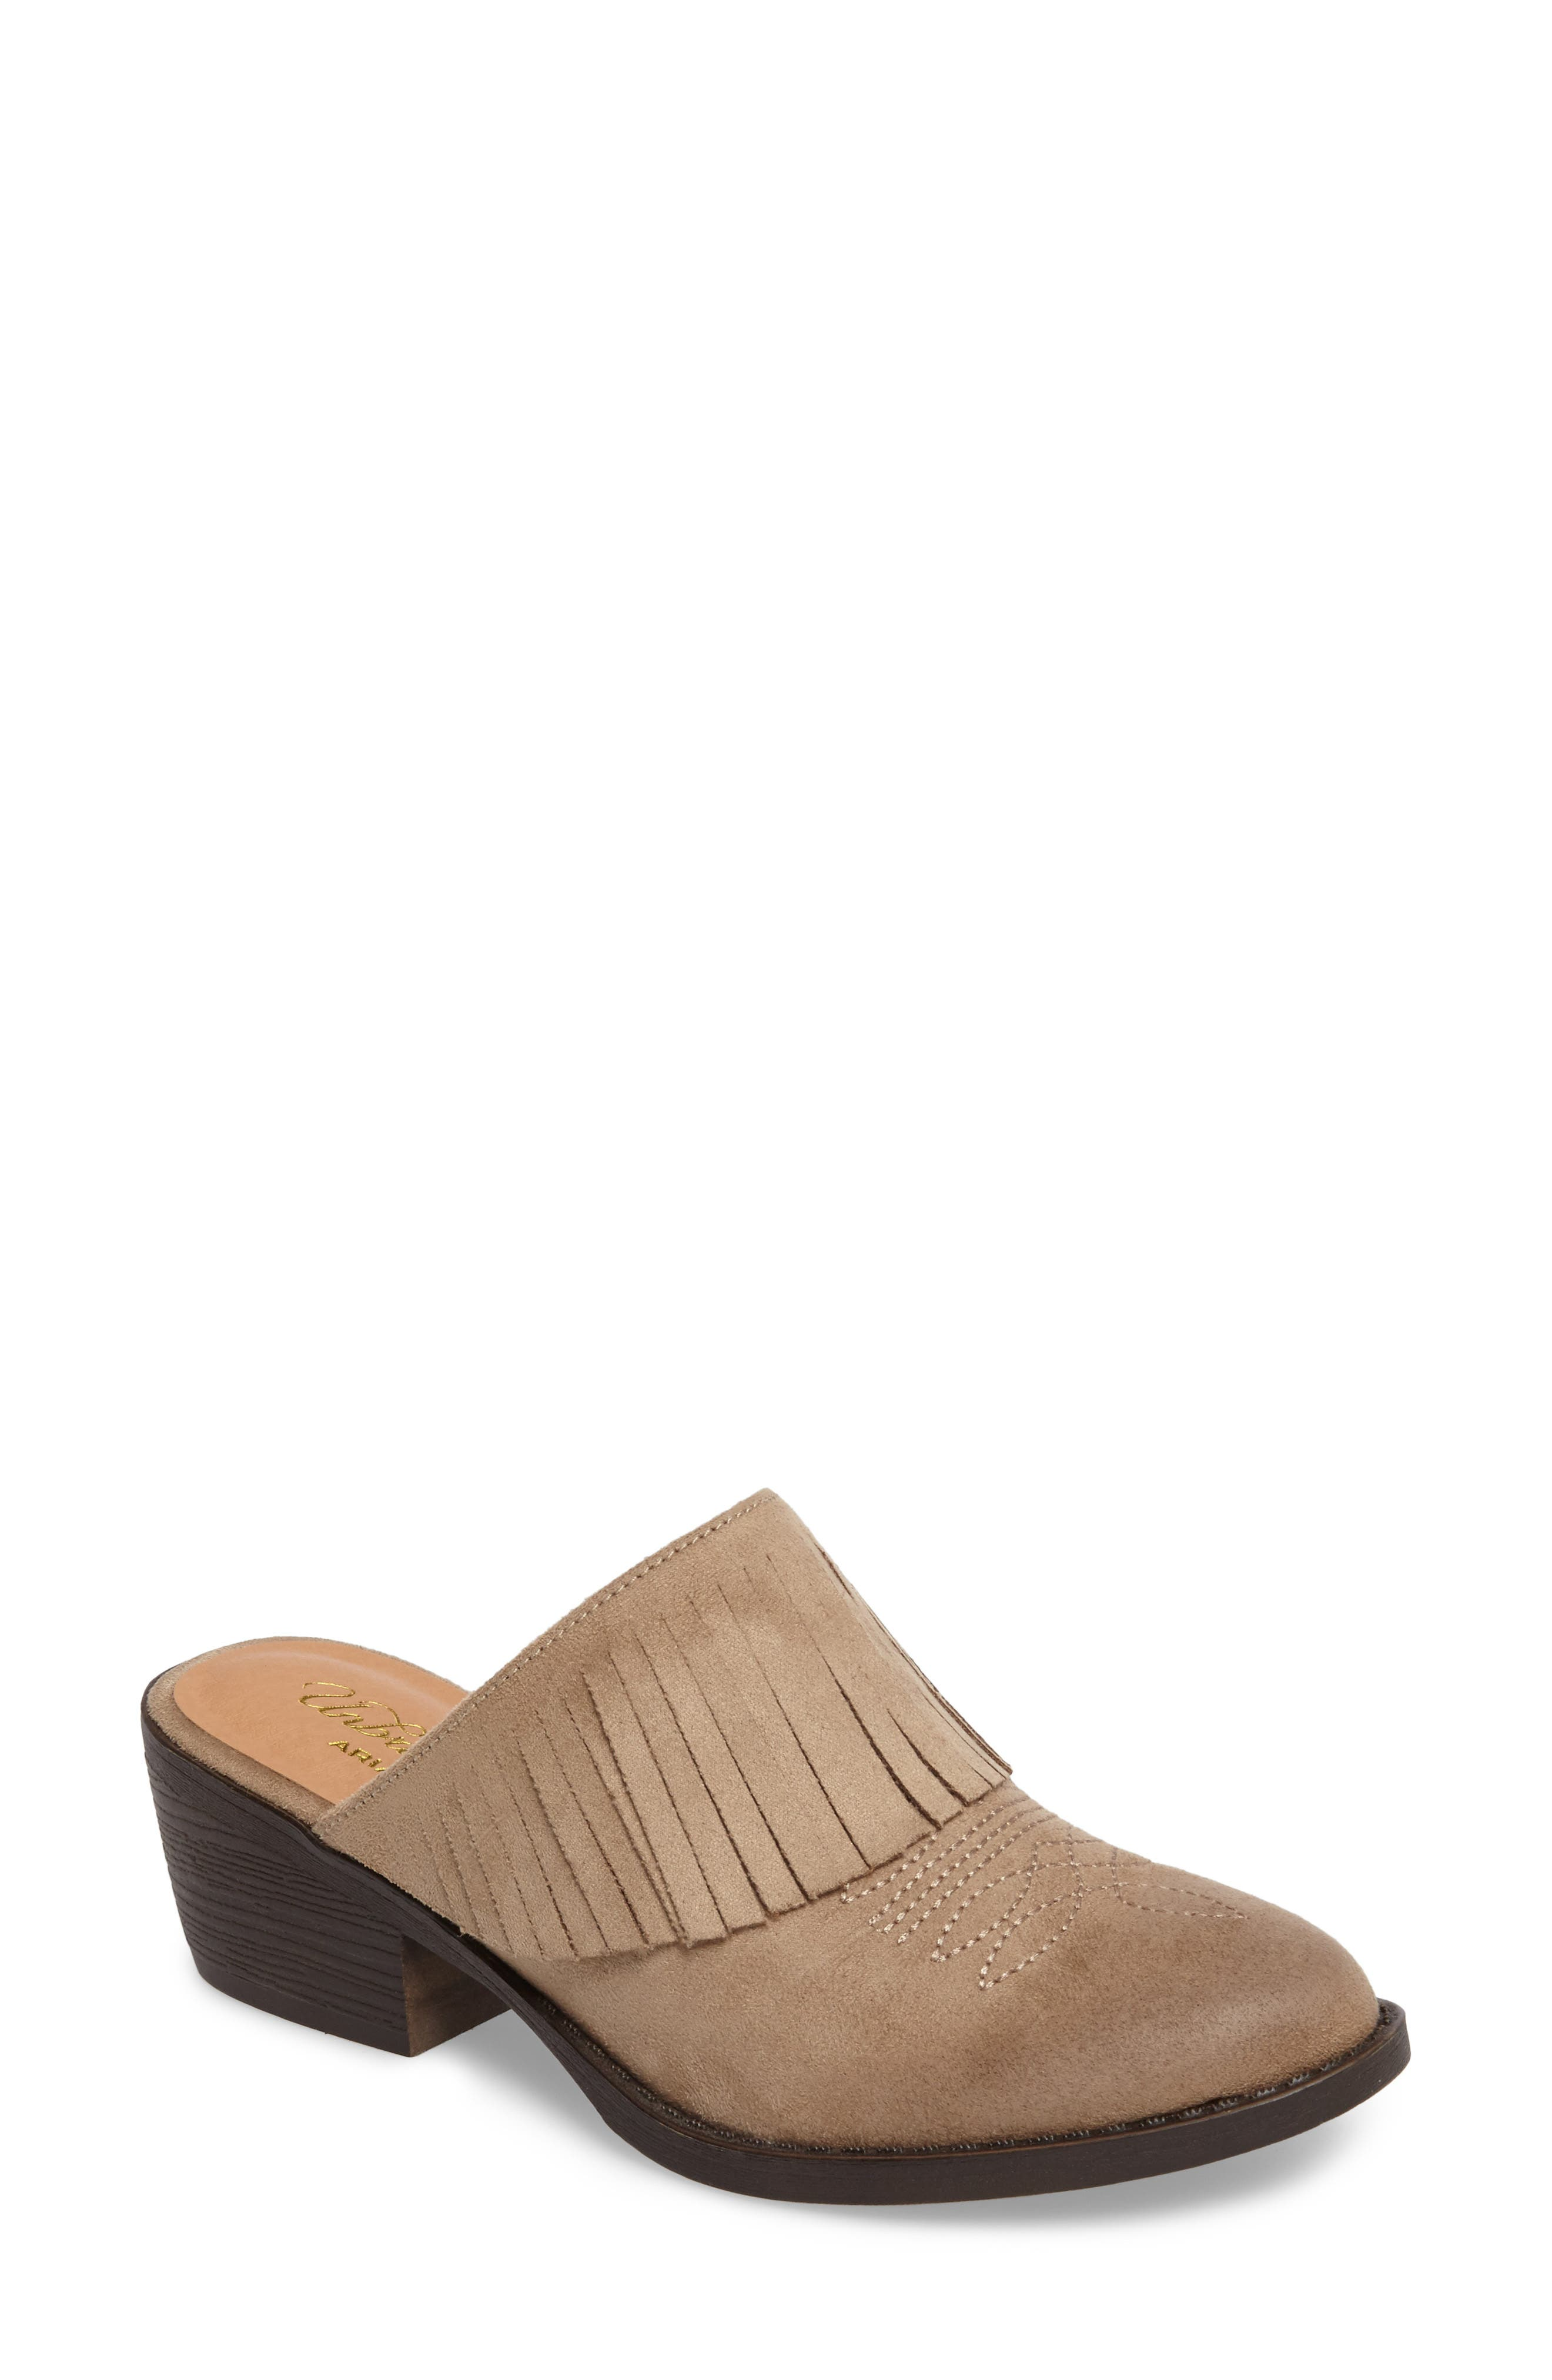 Unbridled Shirley Mule,                         Main,                         color, 200